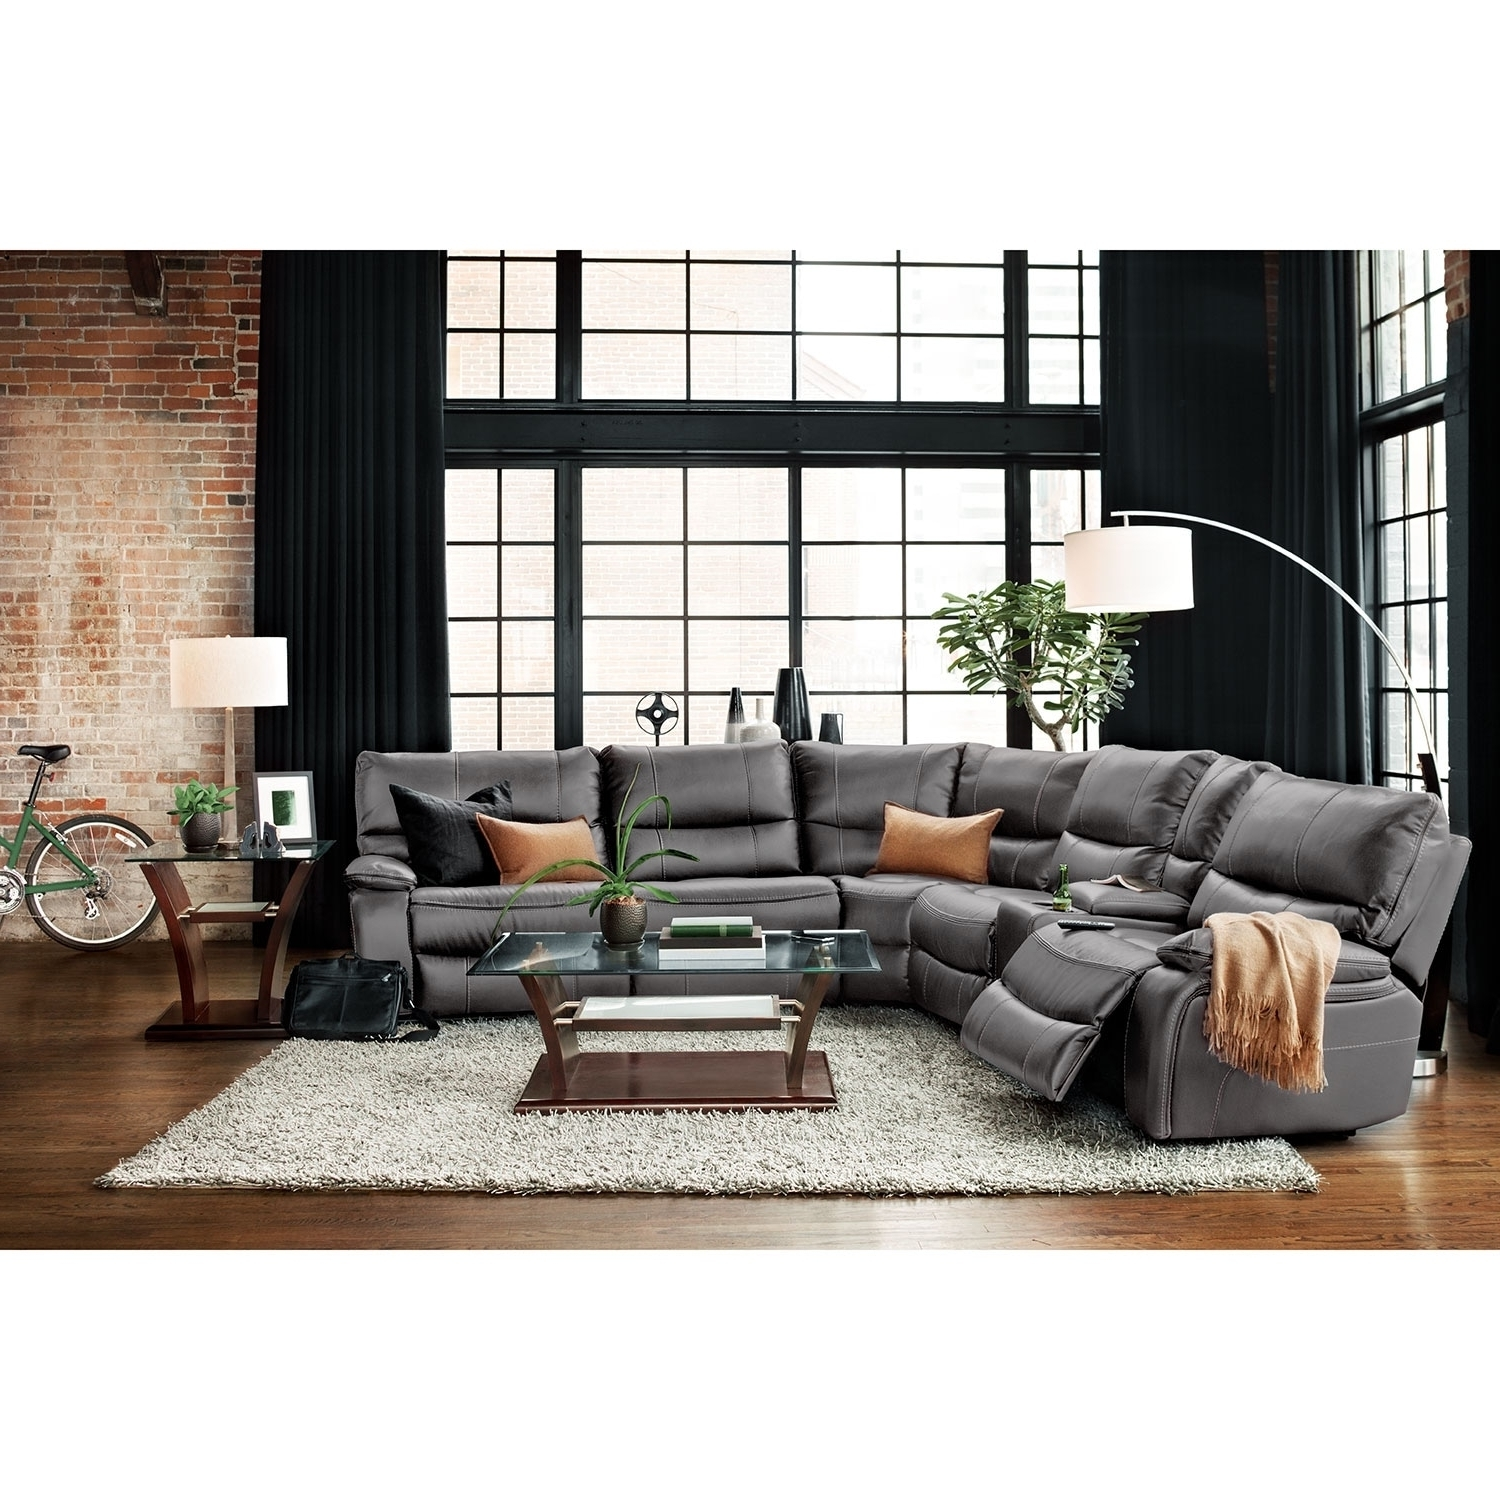 Orlando Sectional Sofas In Best And Newest Orlando 6 Piece Power Reclining Sectional With 1 Stationary Chair (View 8 of 15)